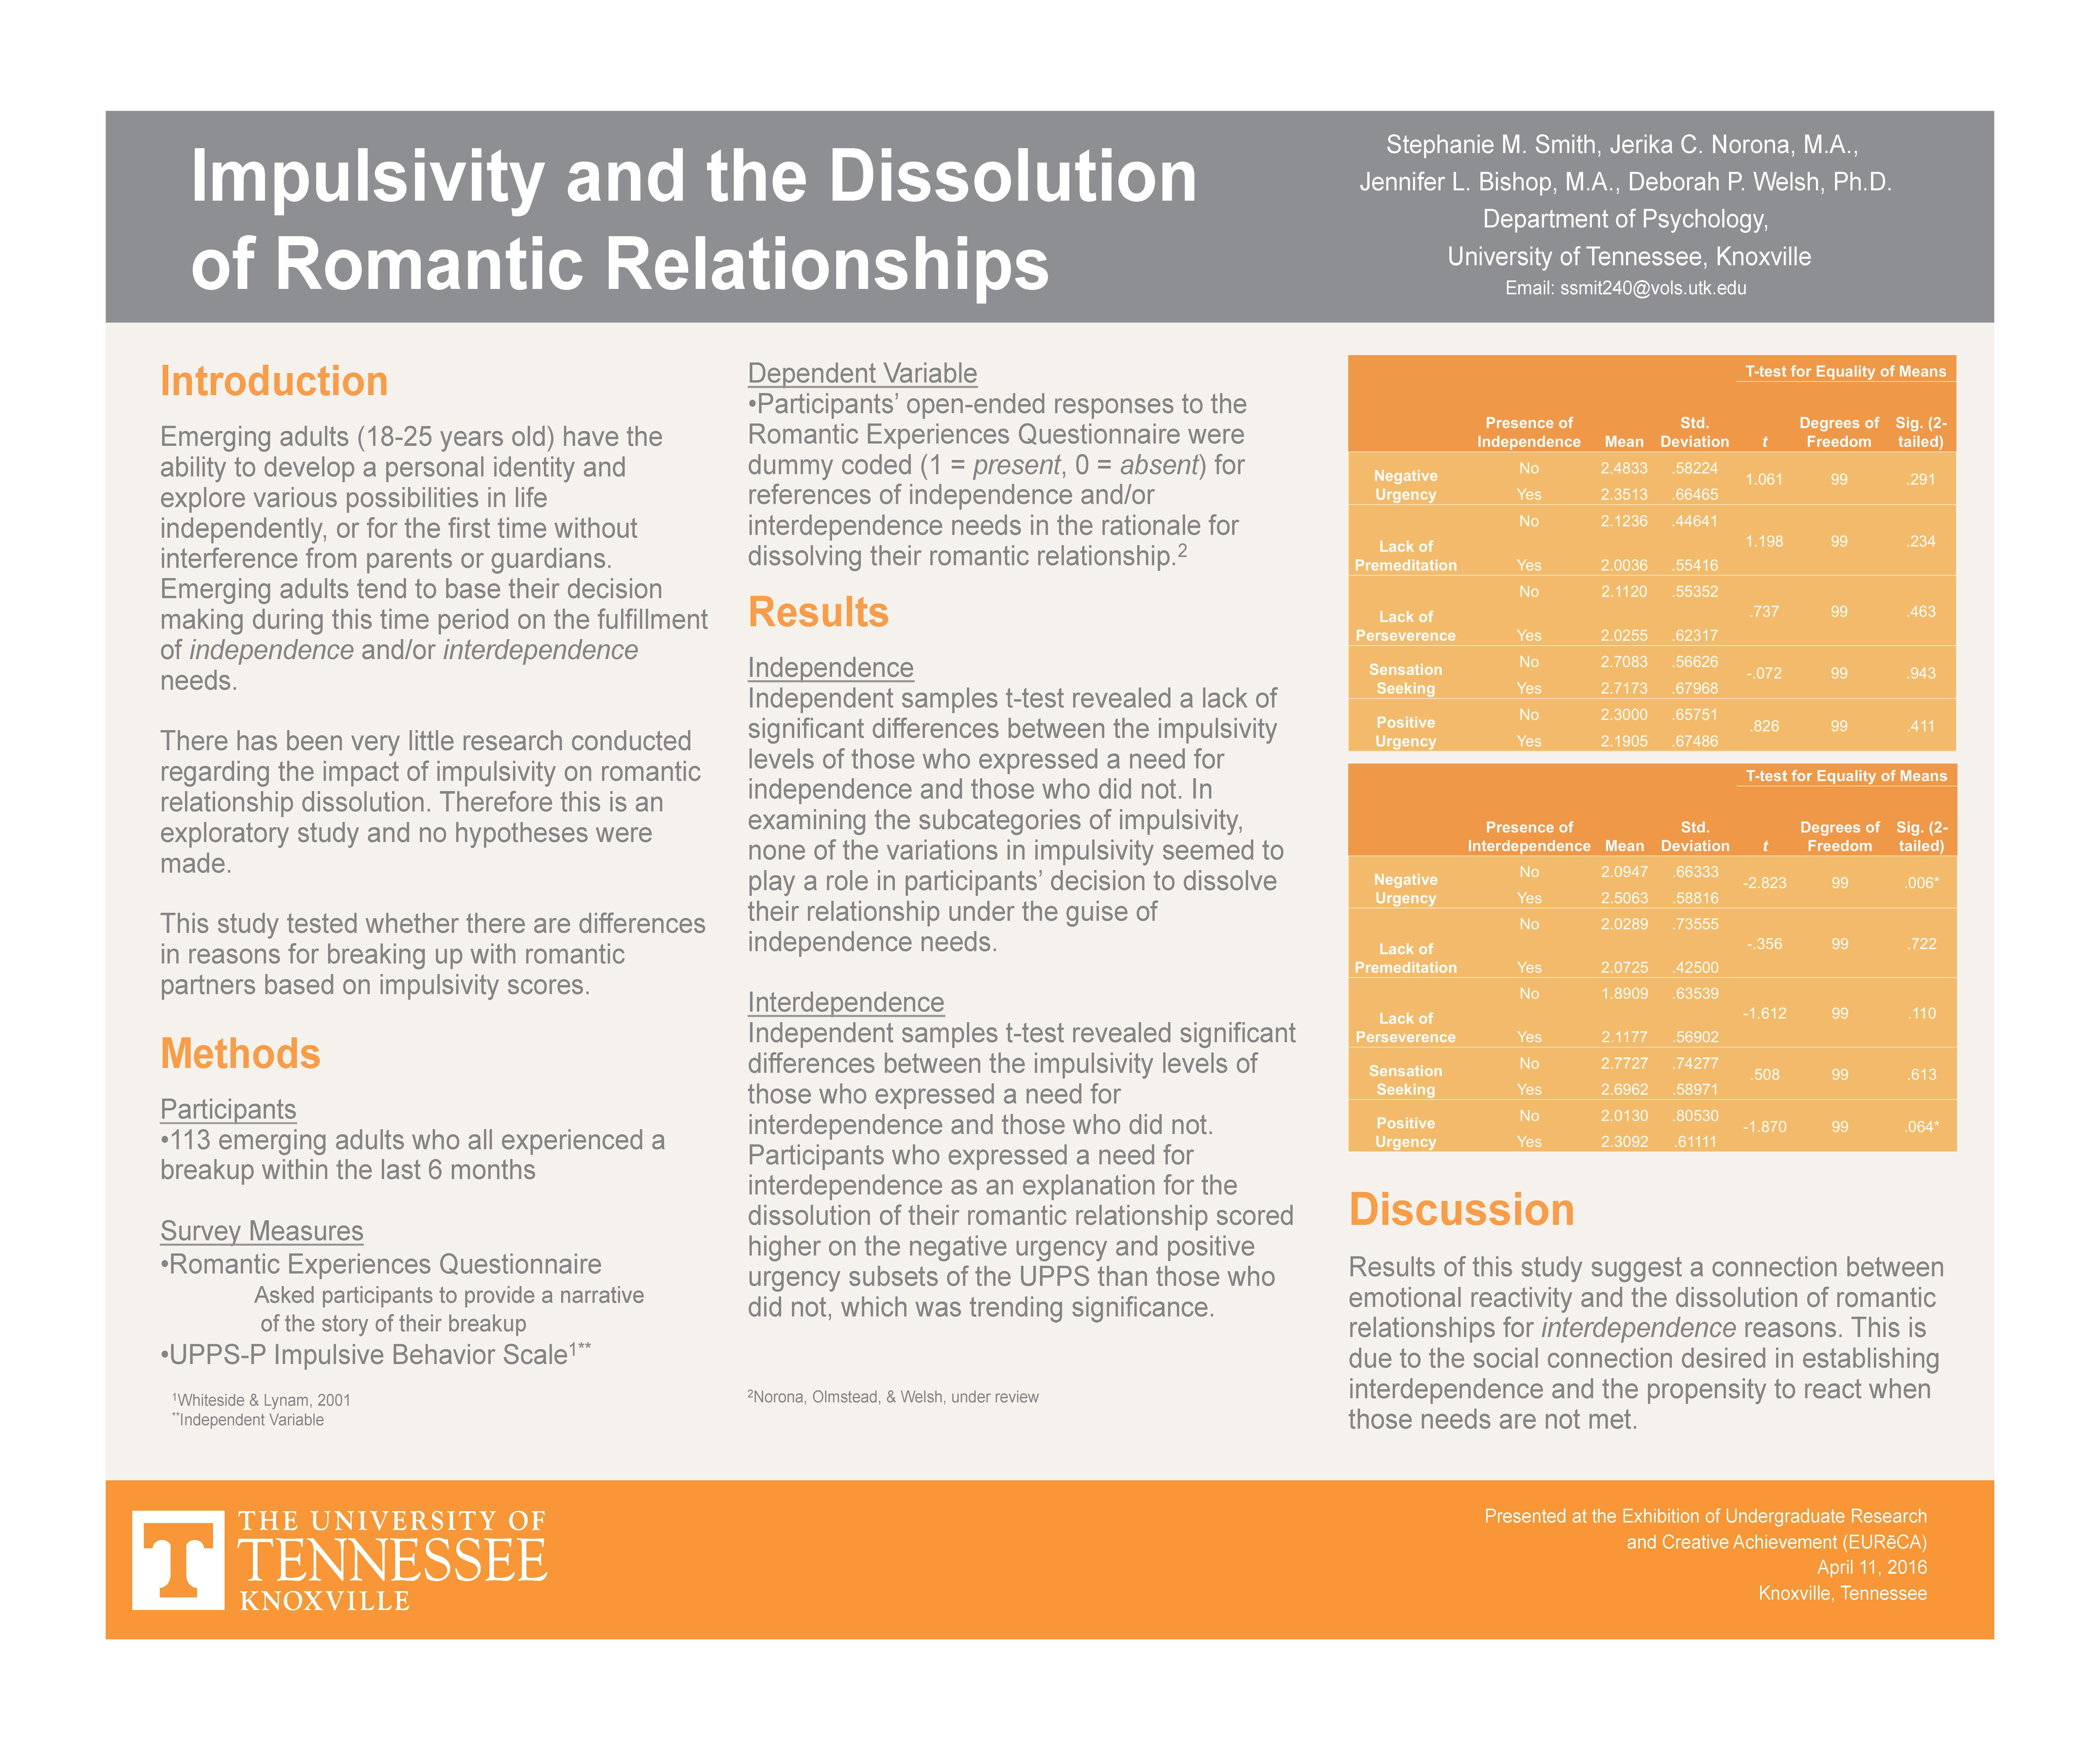 Impulsivity and the Dissolution of Romantic Relationships